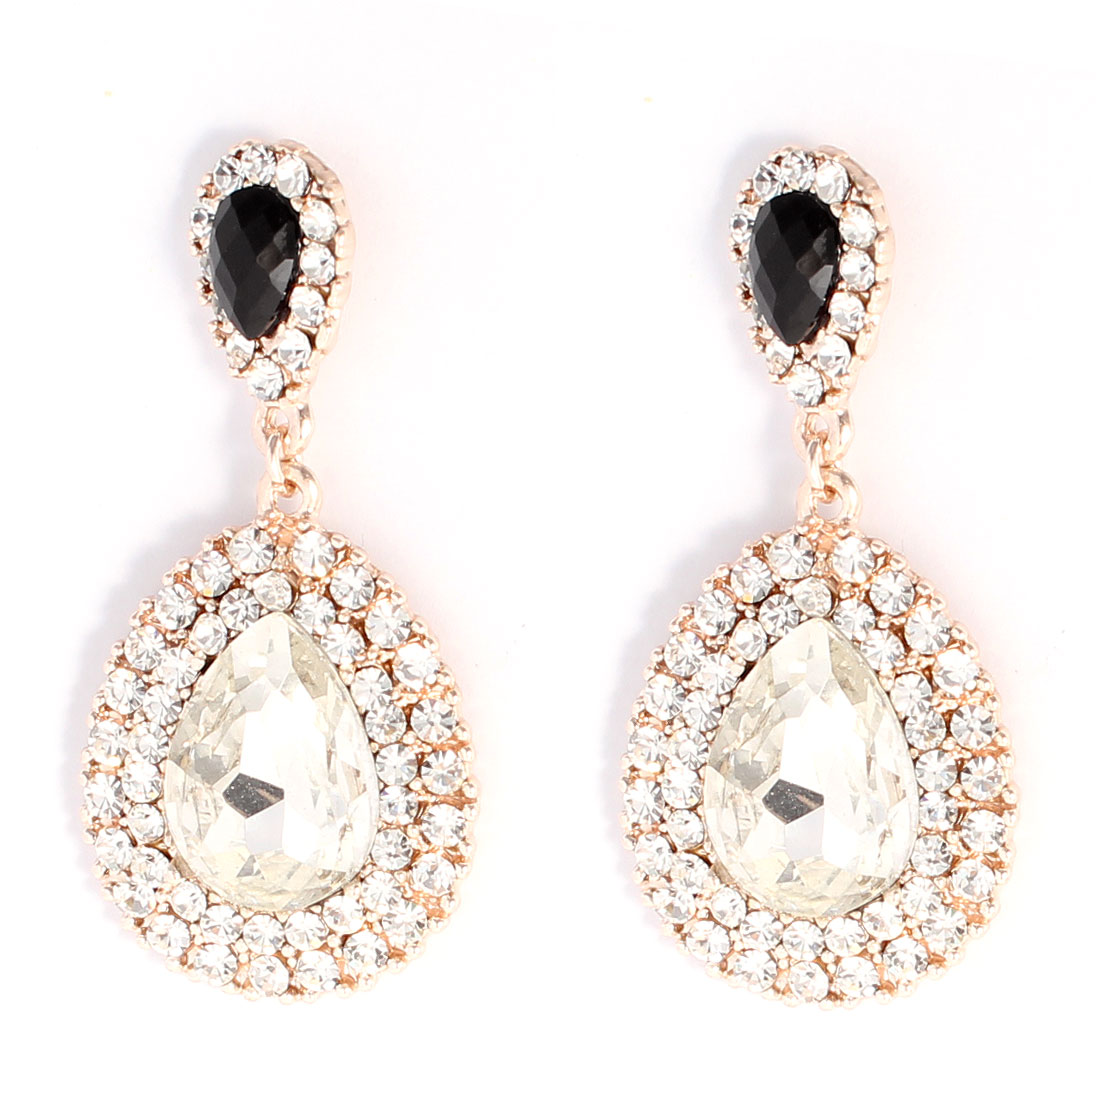 Fashion Ellipse Rhinestone Ornamented Glittery Dangling Earrings